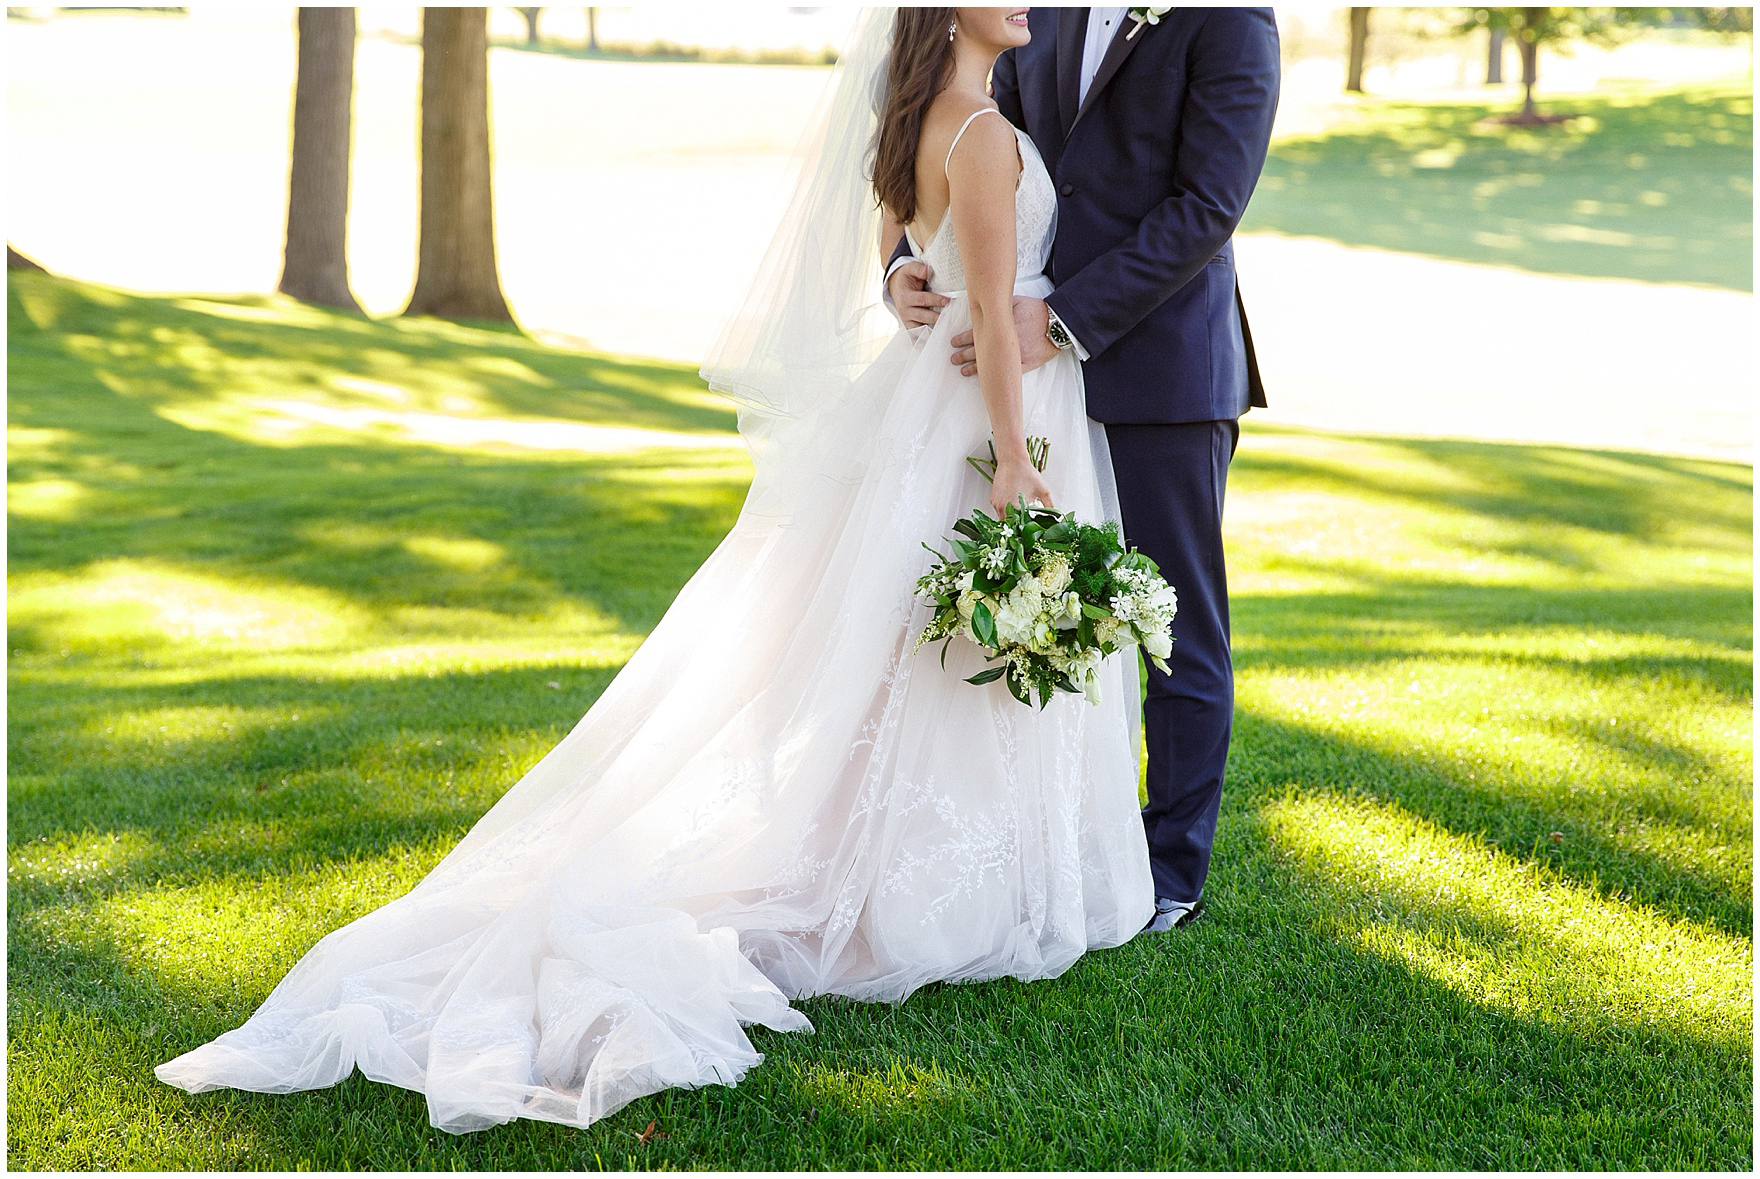 The bride and groom embrace during a Butterfield Country Club wedding.